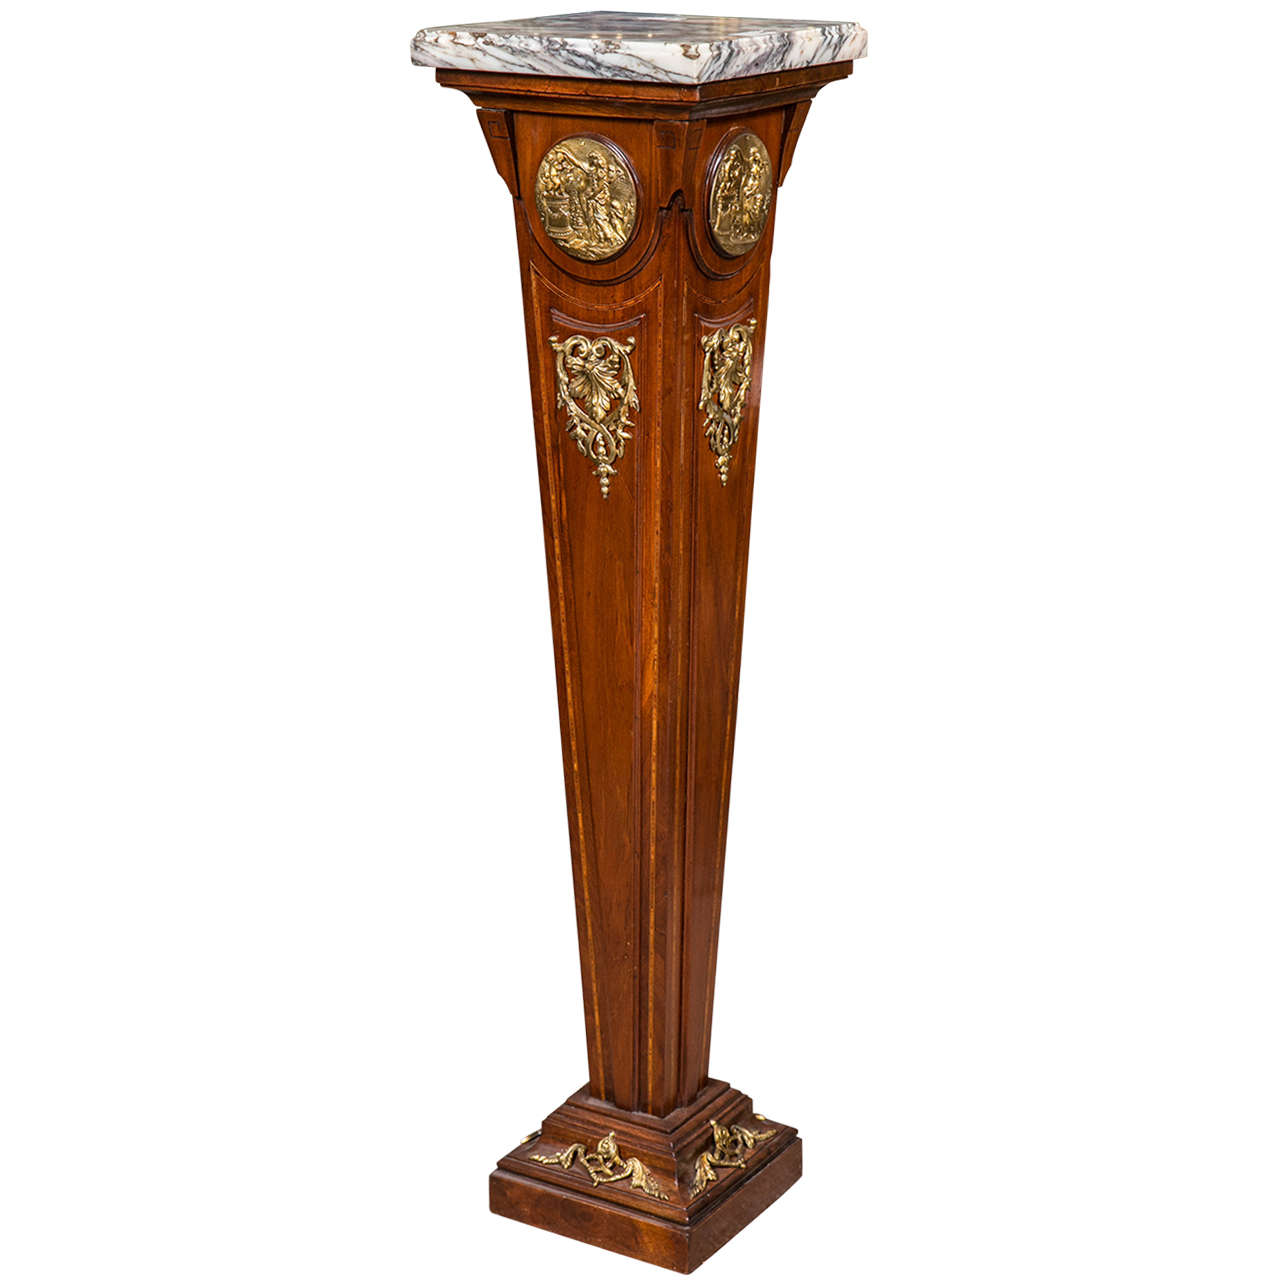 French empire style mahogany pedestal stand at 1stdibs french empire style mahogany pedestal stand for sale reviewsmspy